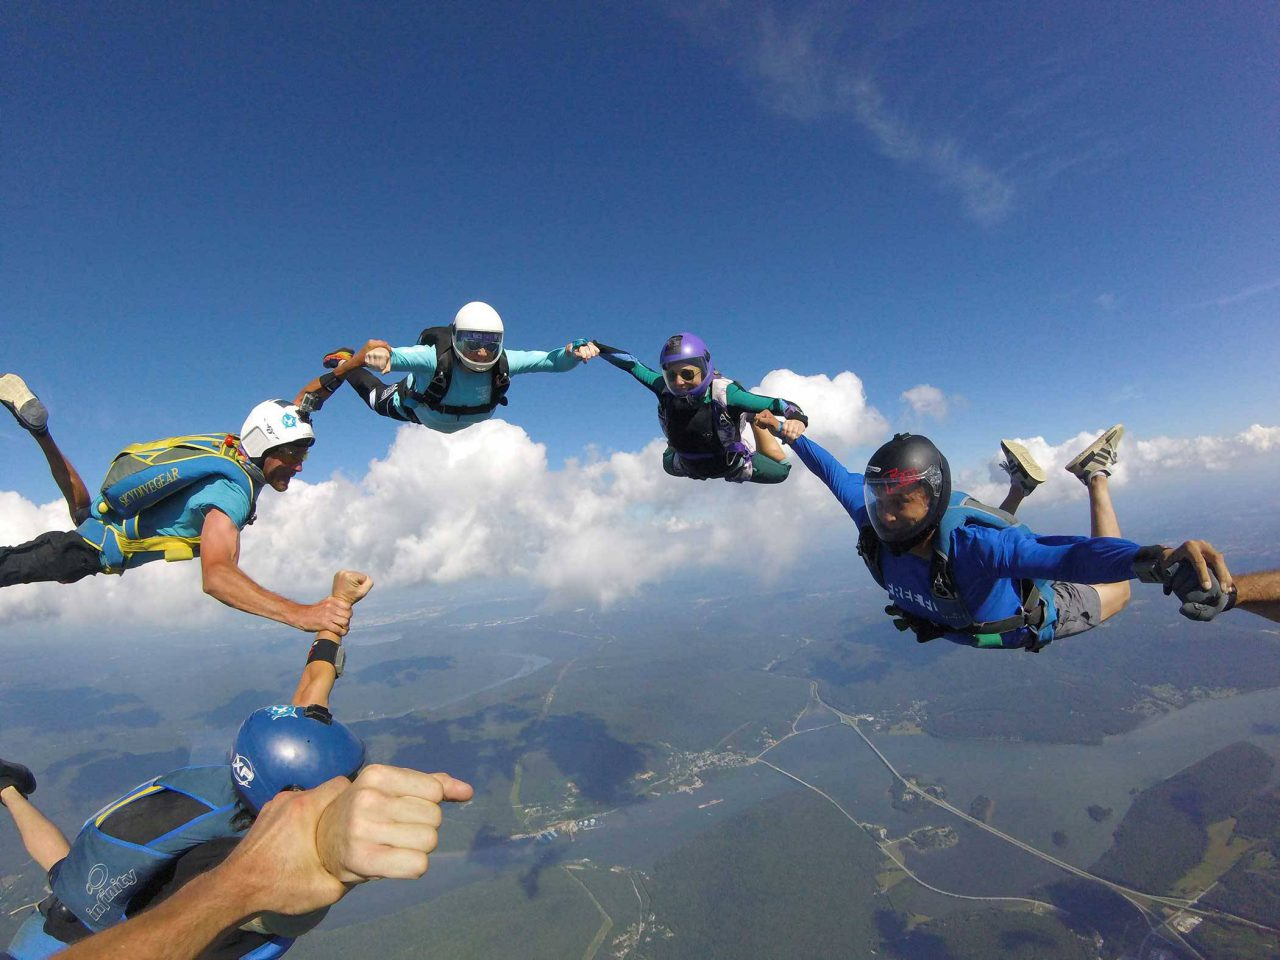 Group of experienced skydivers link arms in circle formation during their skydive